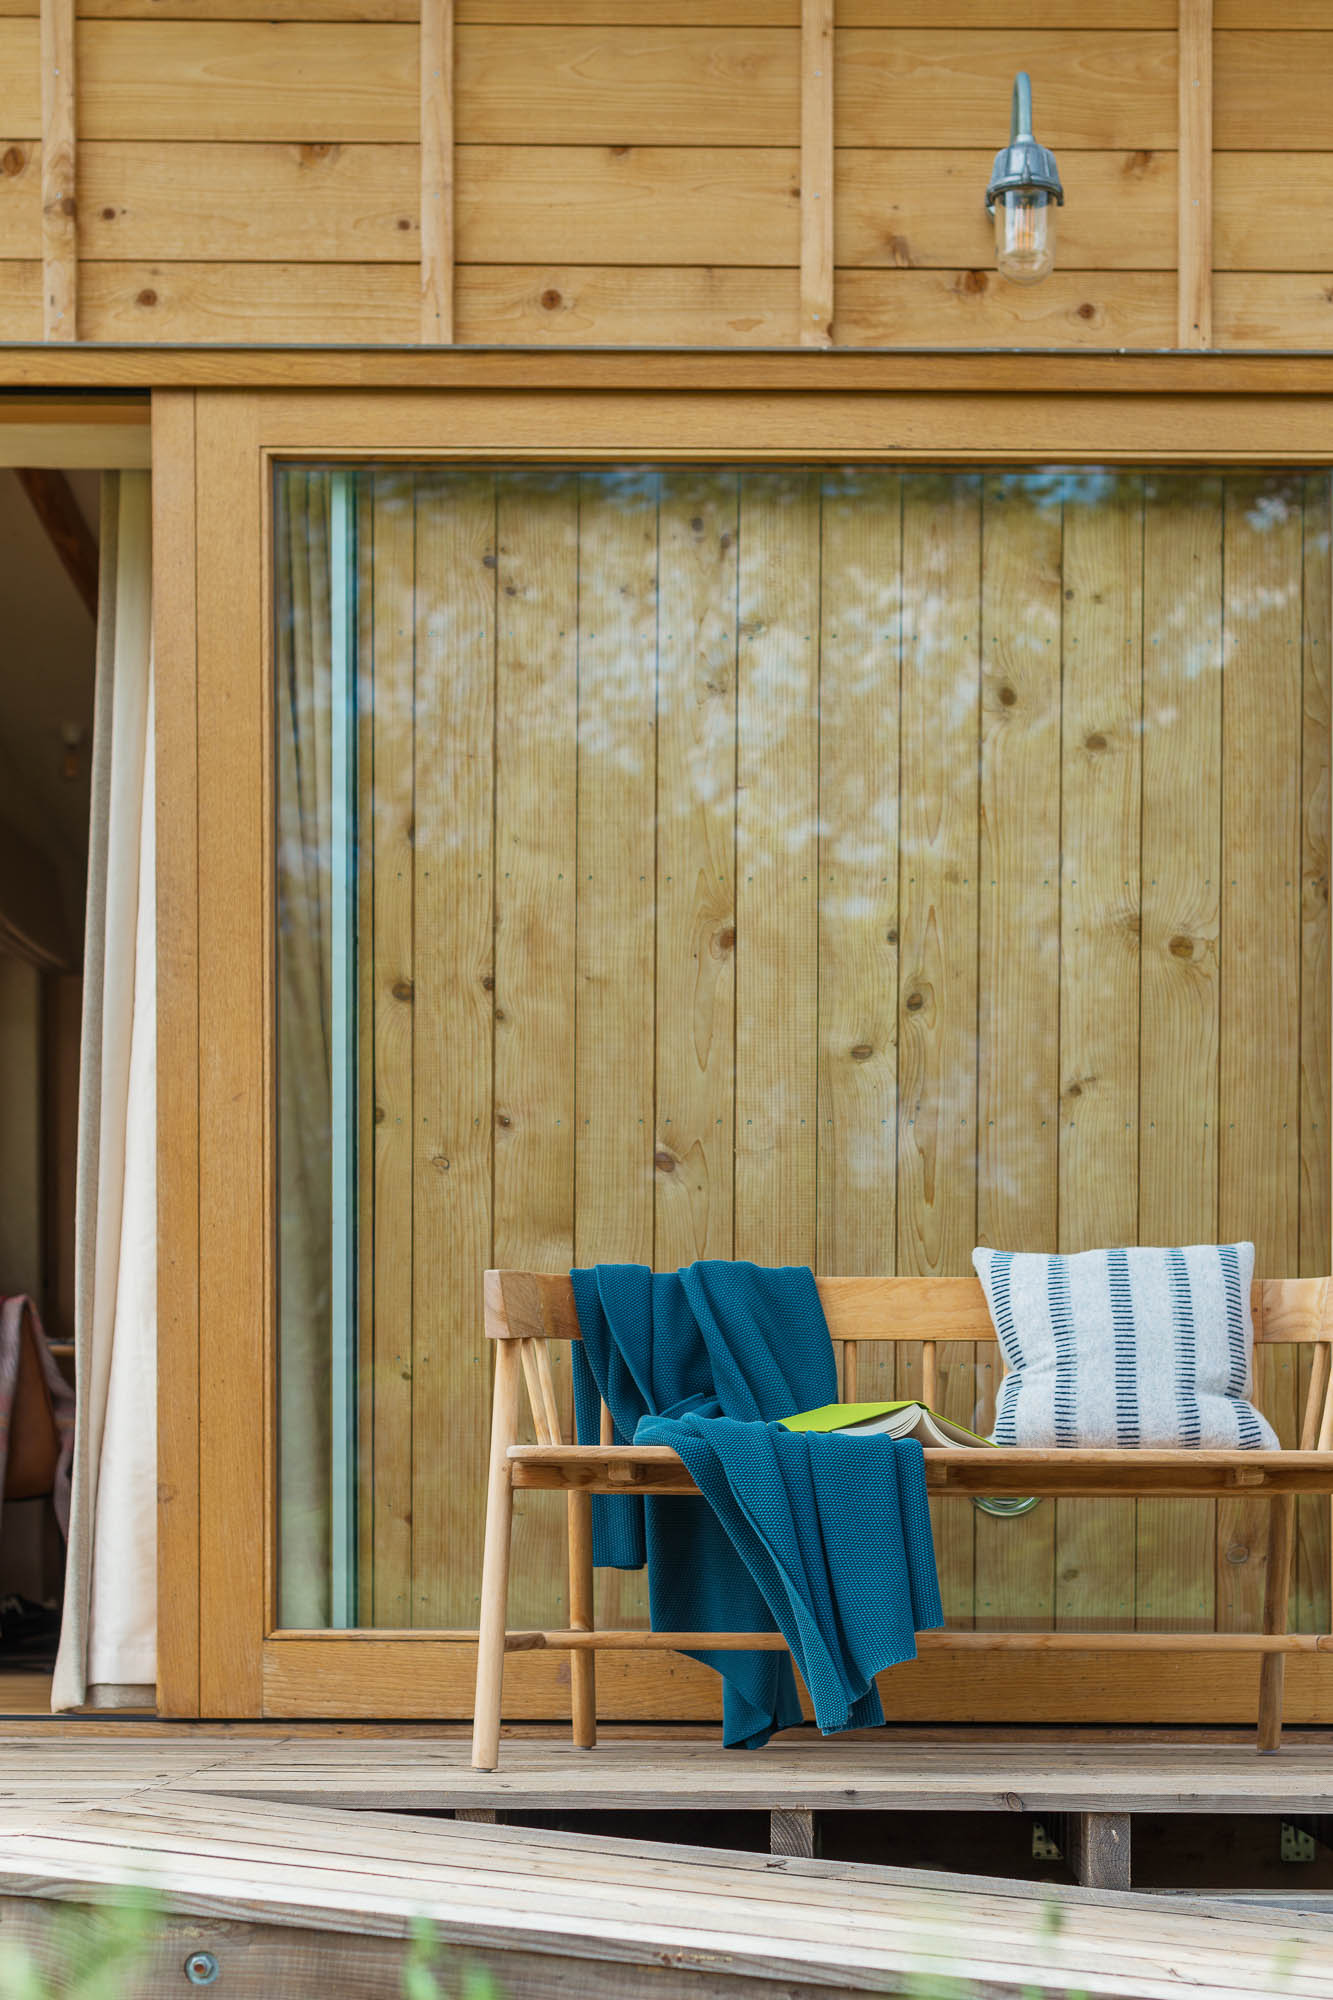 off-grid bespoke cabin exterior with outdoor seating, bench and books